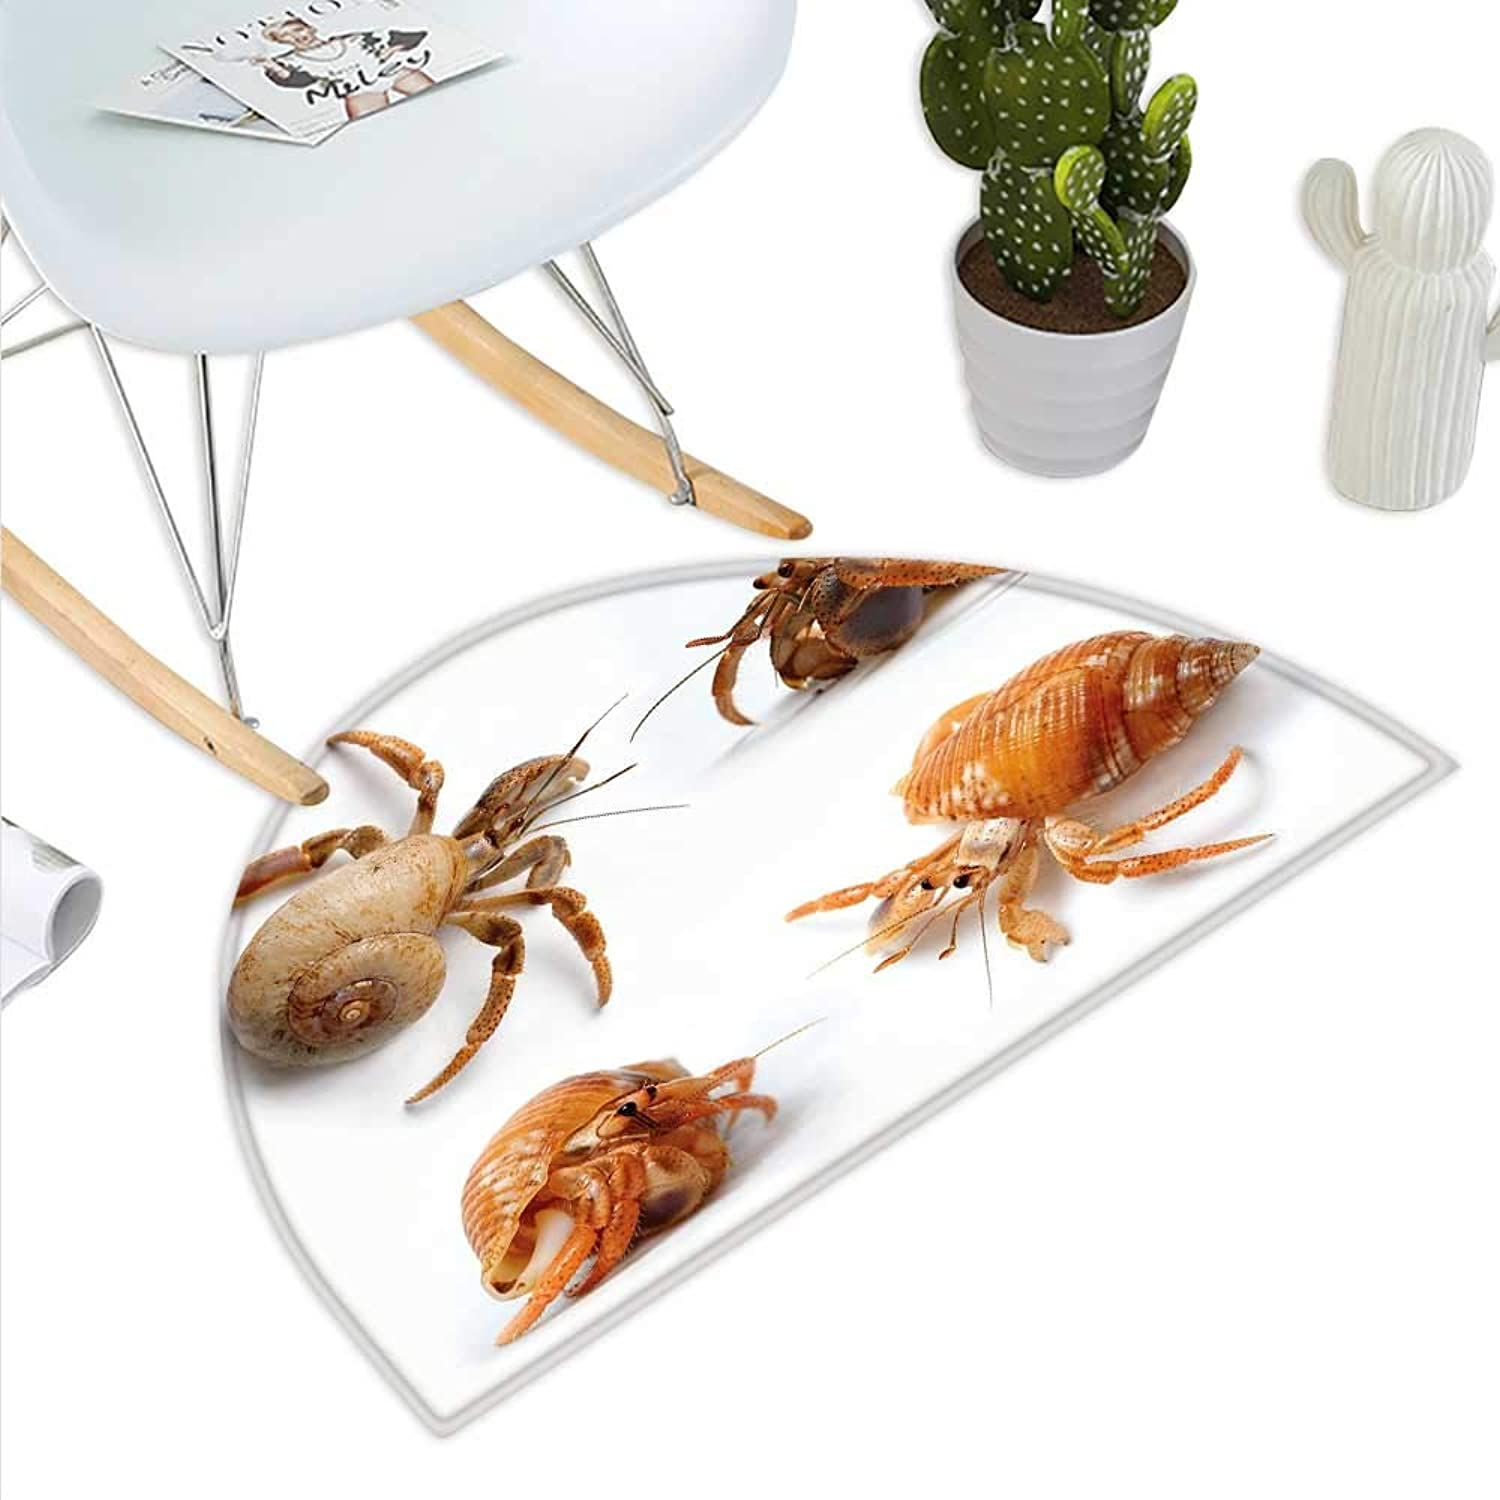 Crabs Semicircle Doormat Sea Animals Theme Set of Hermit Crabs from Caribbean Seascape Digital Print Halfmoon doormats H 35.4  xD 53.1  Marigold and White